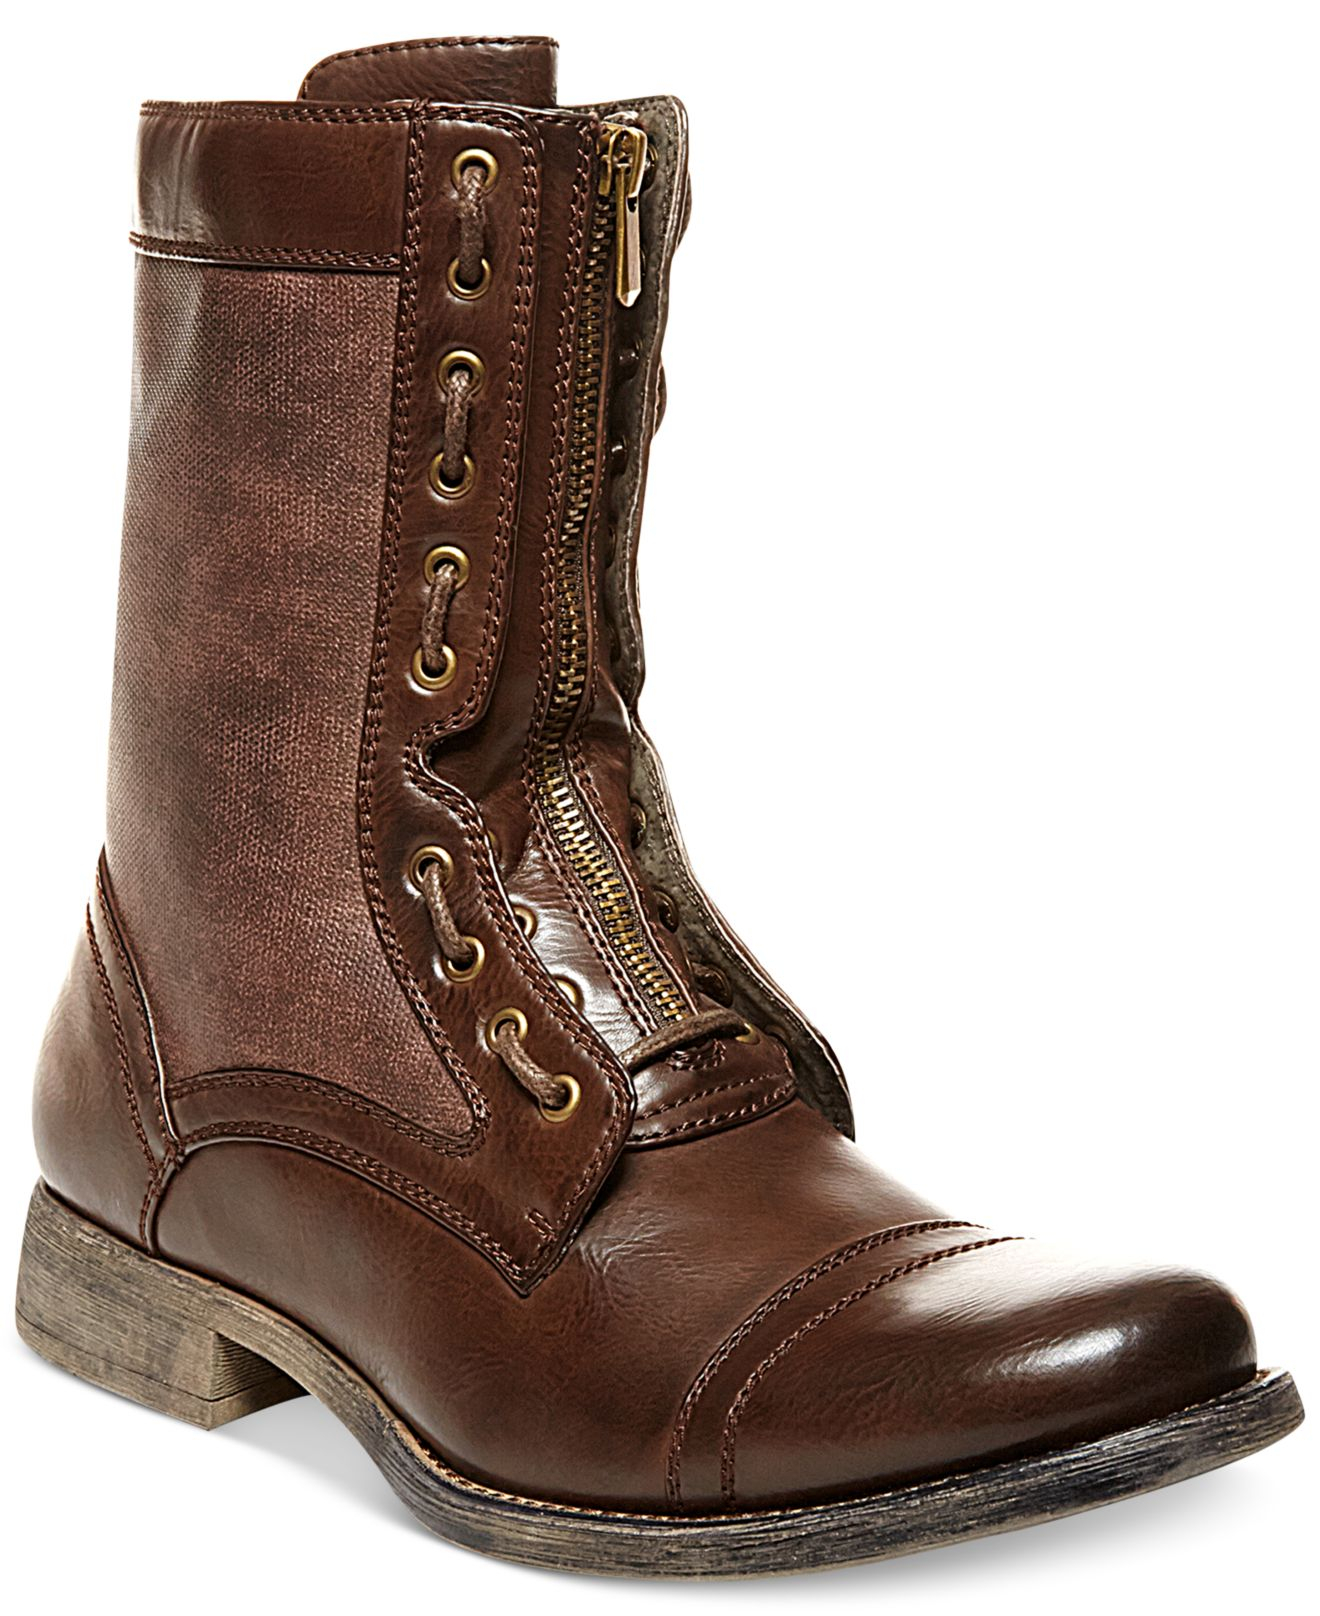 steve madden madden archer cap toe boots in brown for